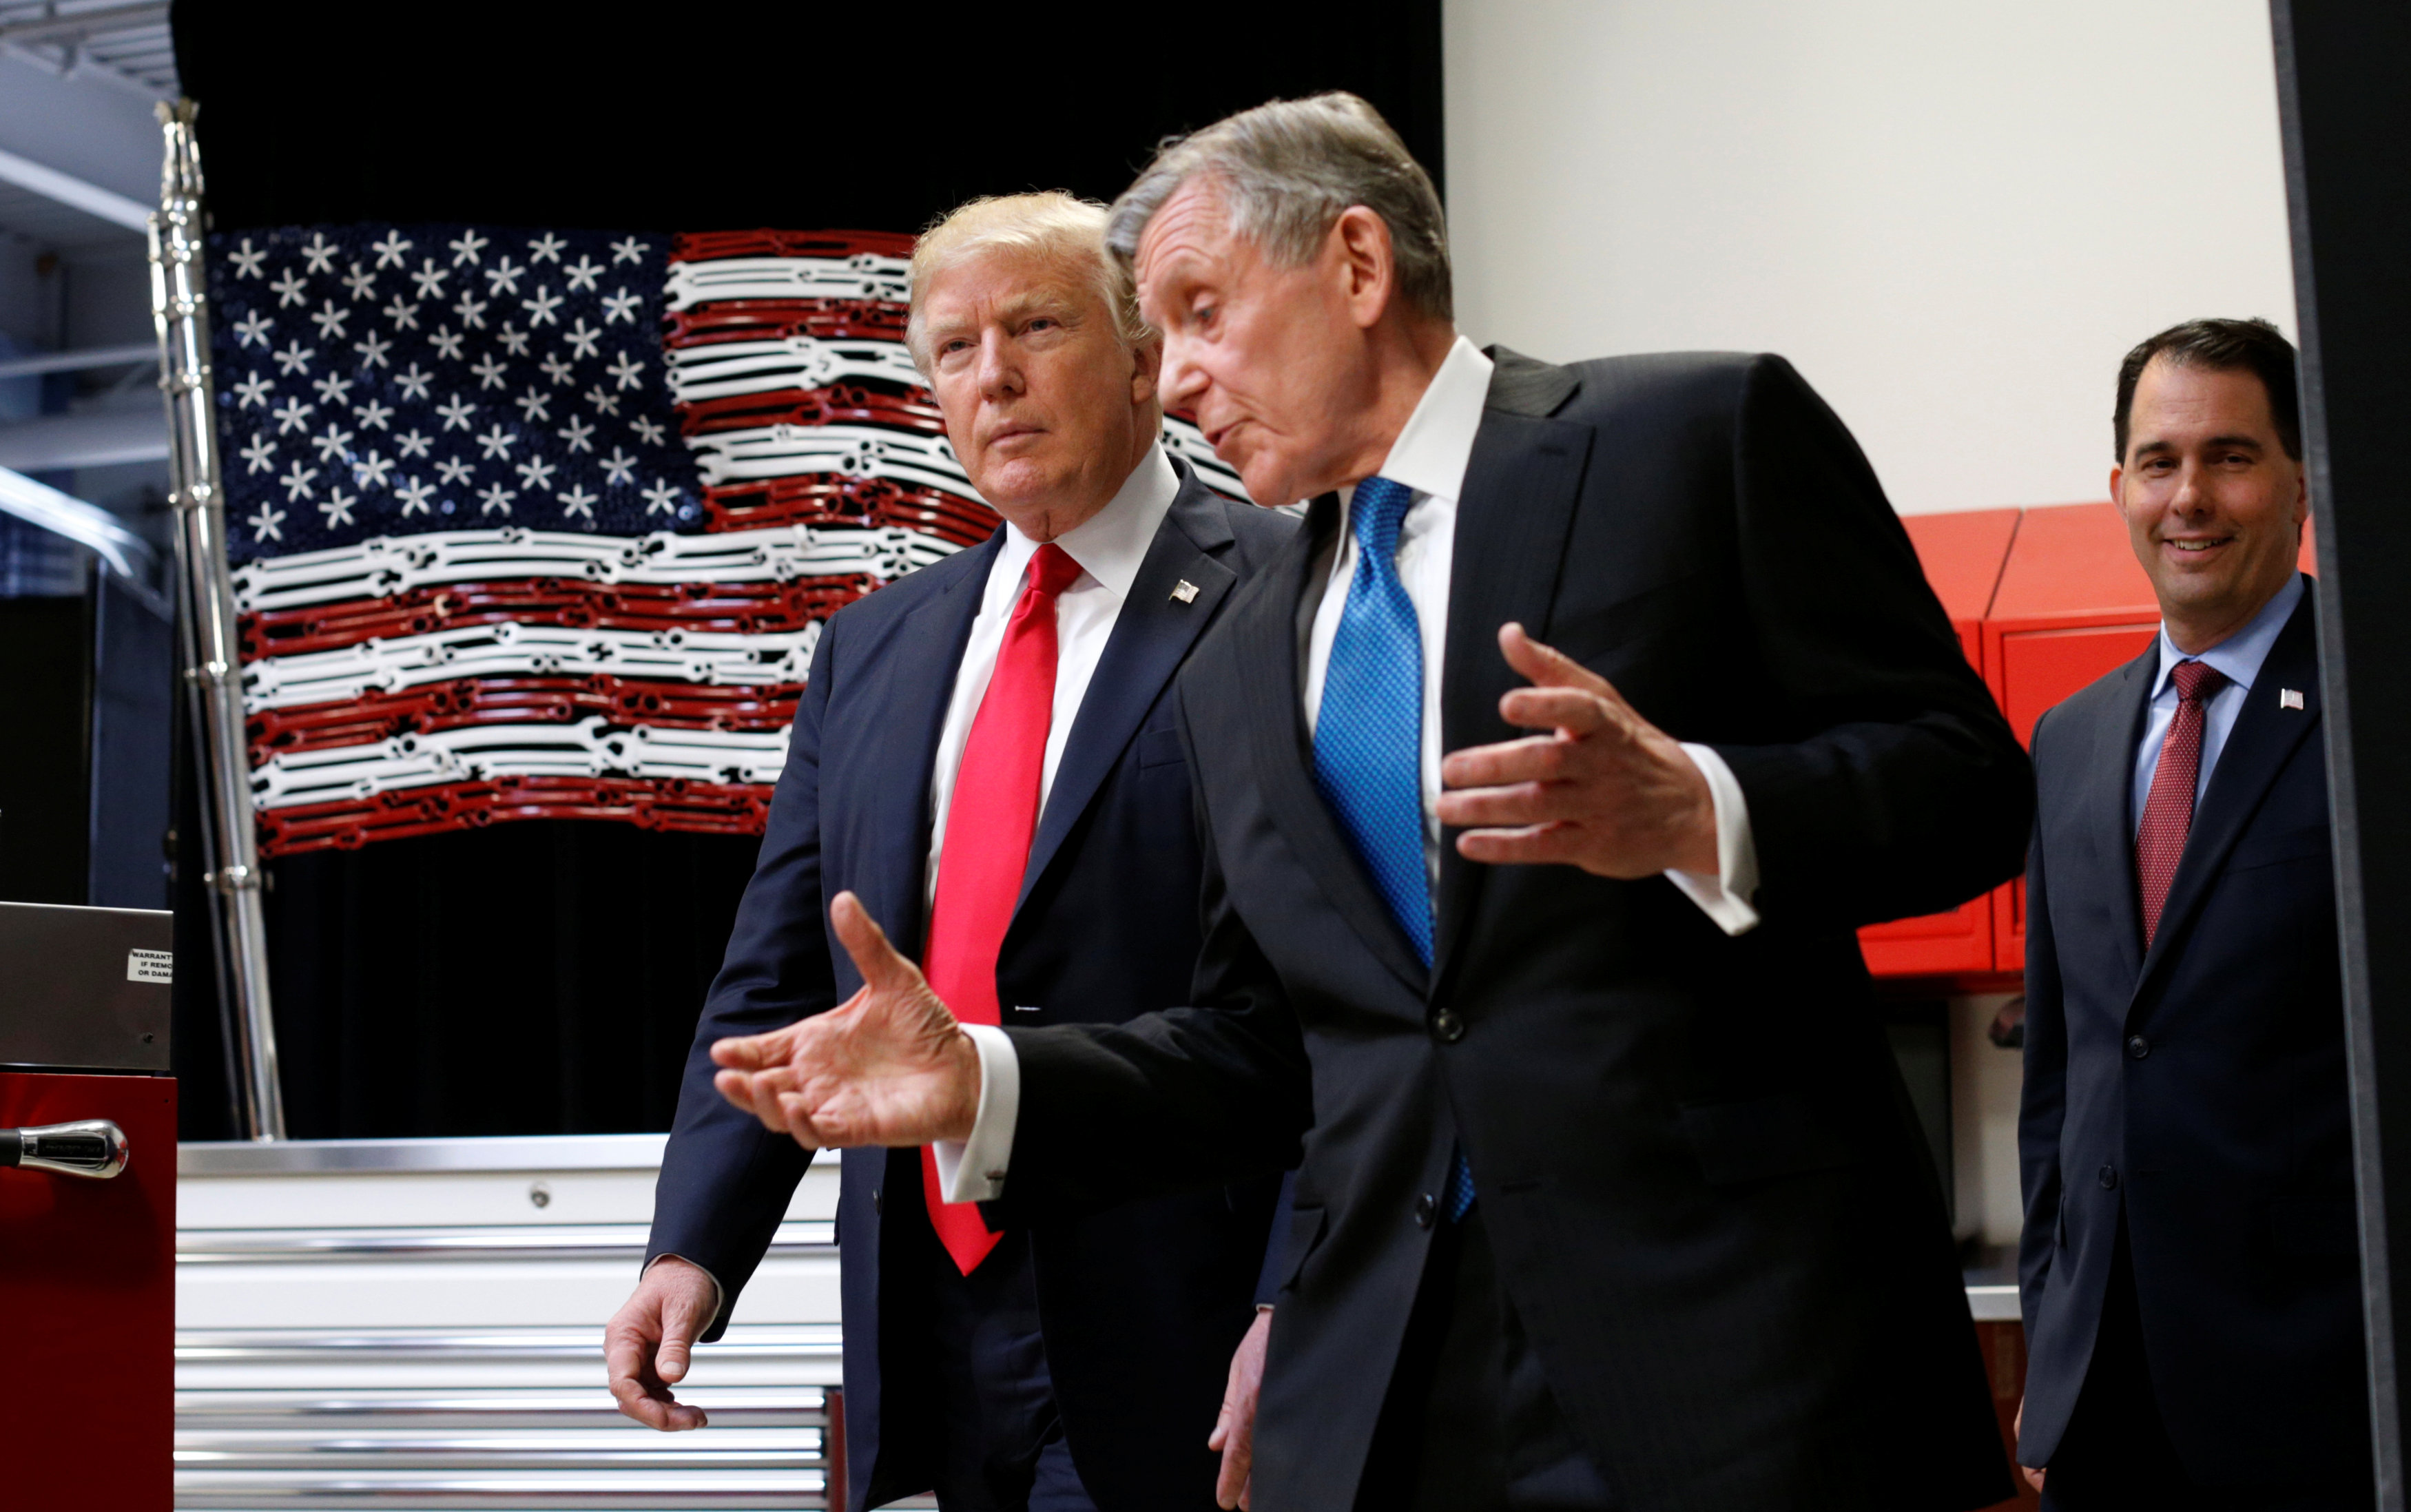 President Donald Trump tours the world headquarters of Snap-On Inc with CEO Nick Pinchuk (C) as Wisconsin Governor Scott Walker (R) follows, in Kenosha, Wis., on April 18, 2017. (REUTERS/Kevin Lamarque)